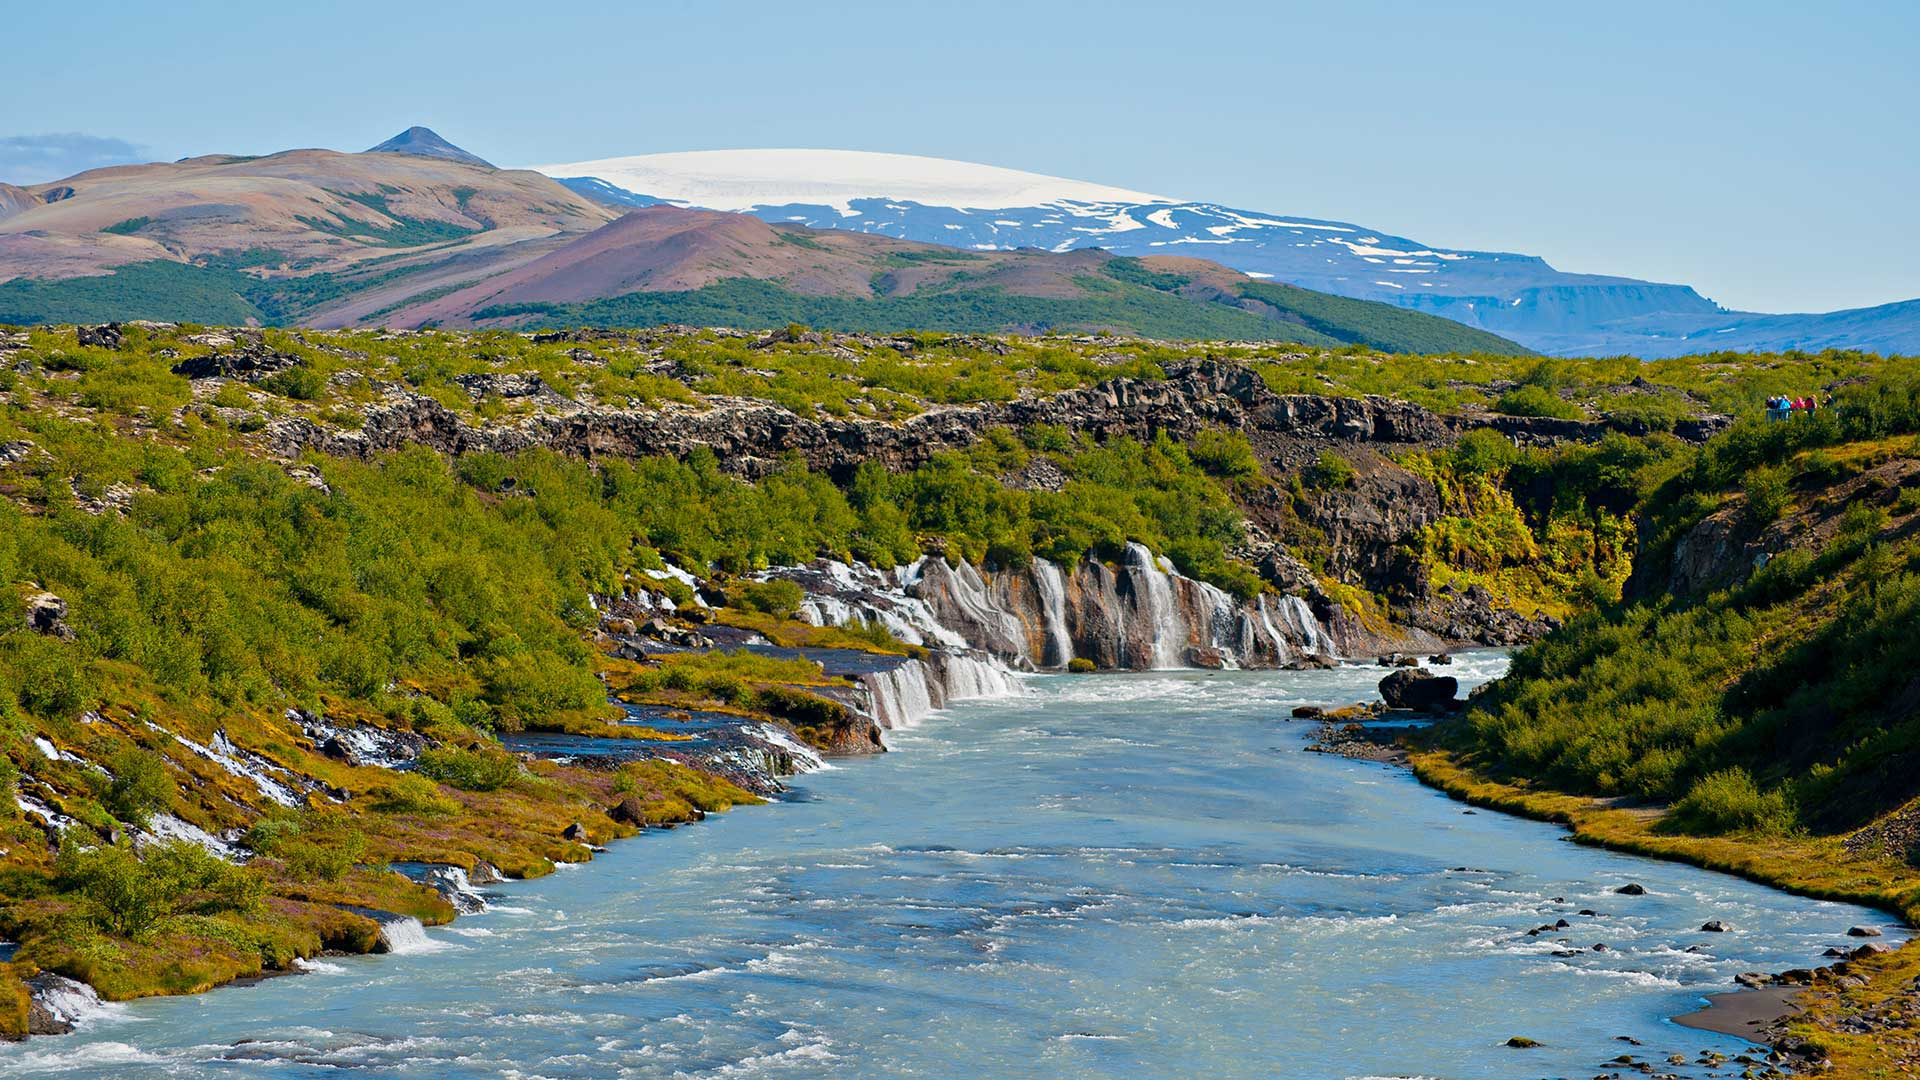 View of Hraunfossar waterfall towards Langjökull